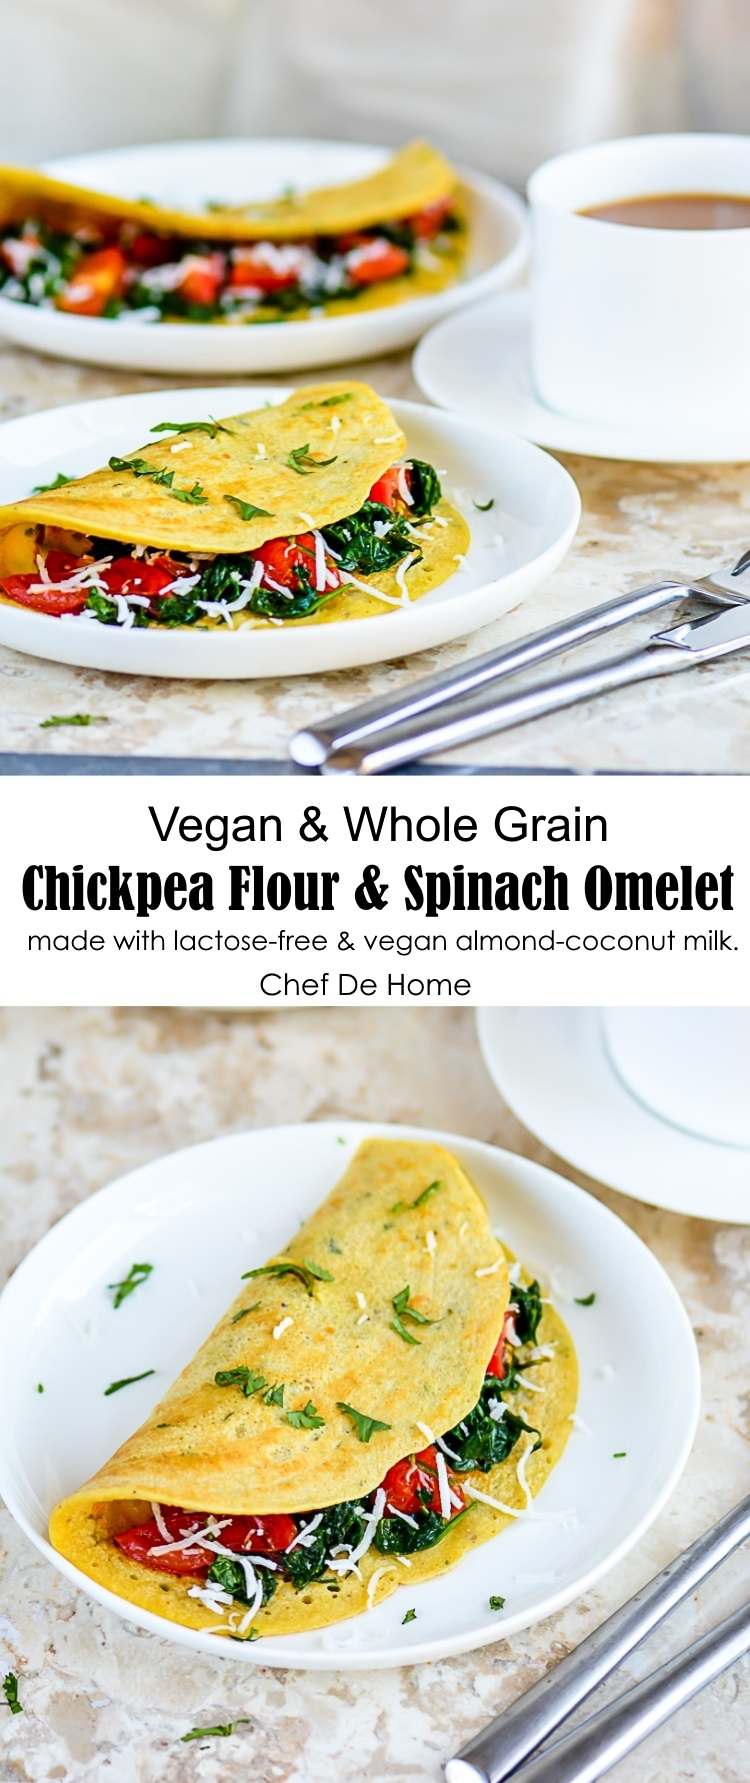 Vegan Chickpea Flour And Spinach Omelets made with Vegan Almond Milk | chefdehome.com